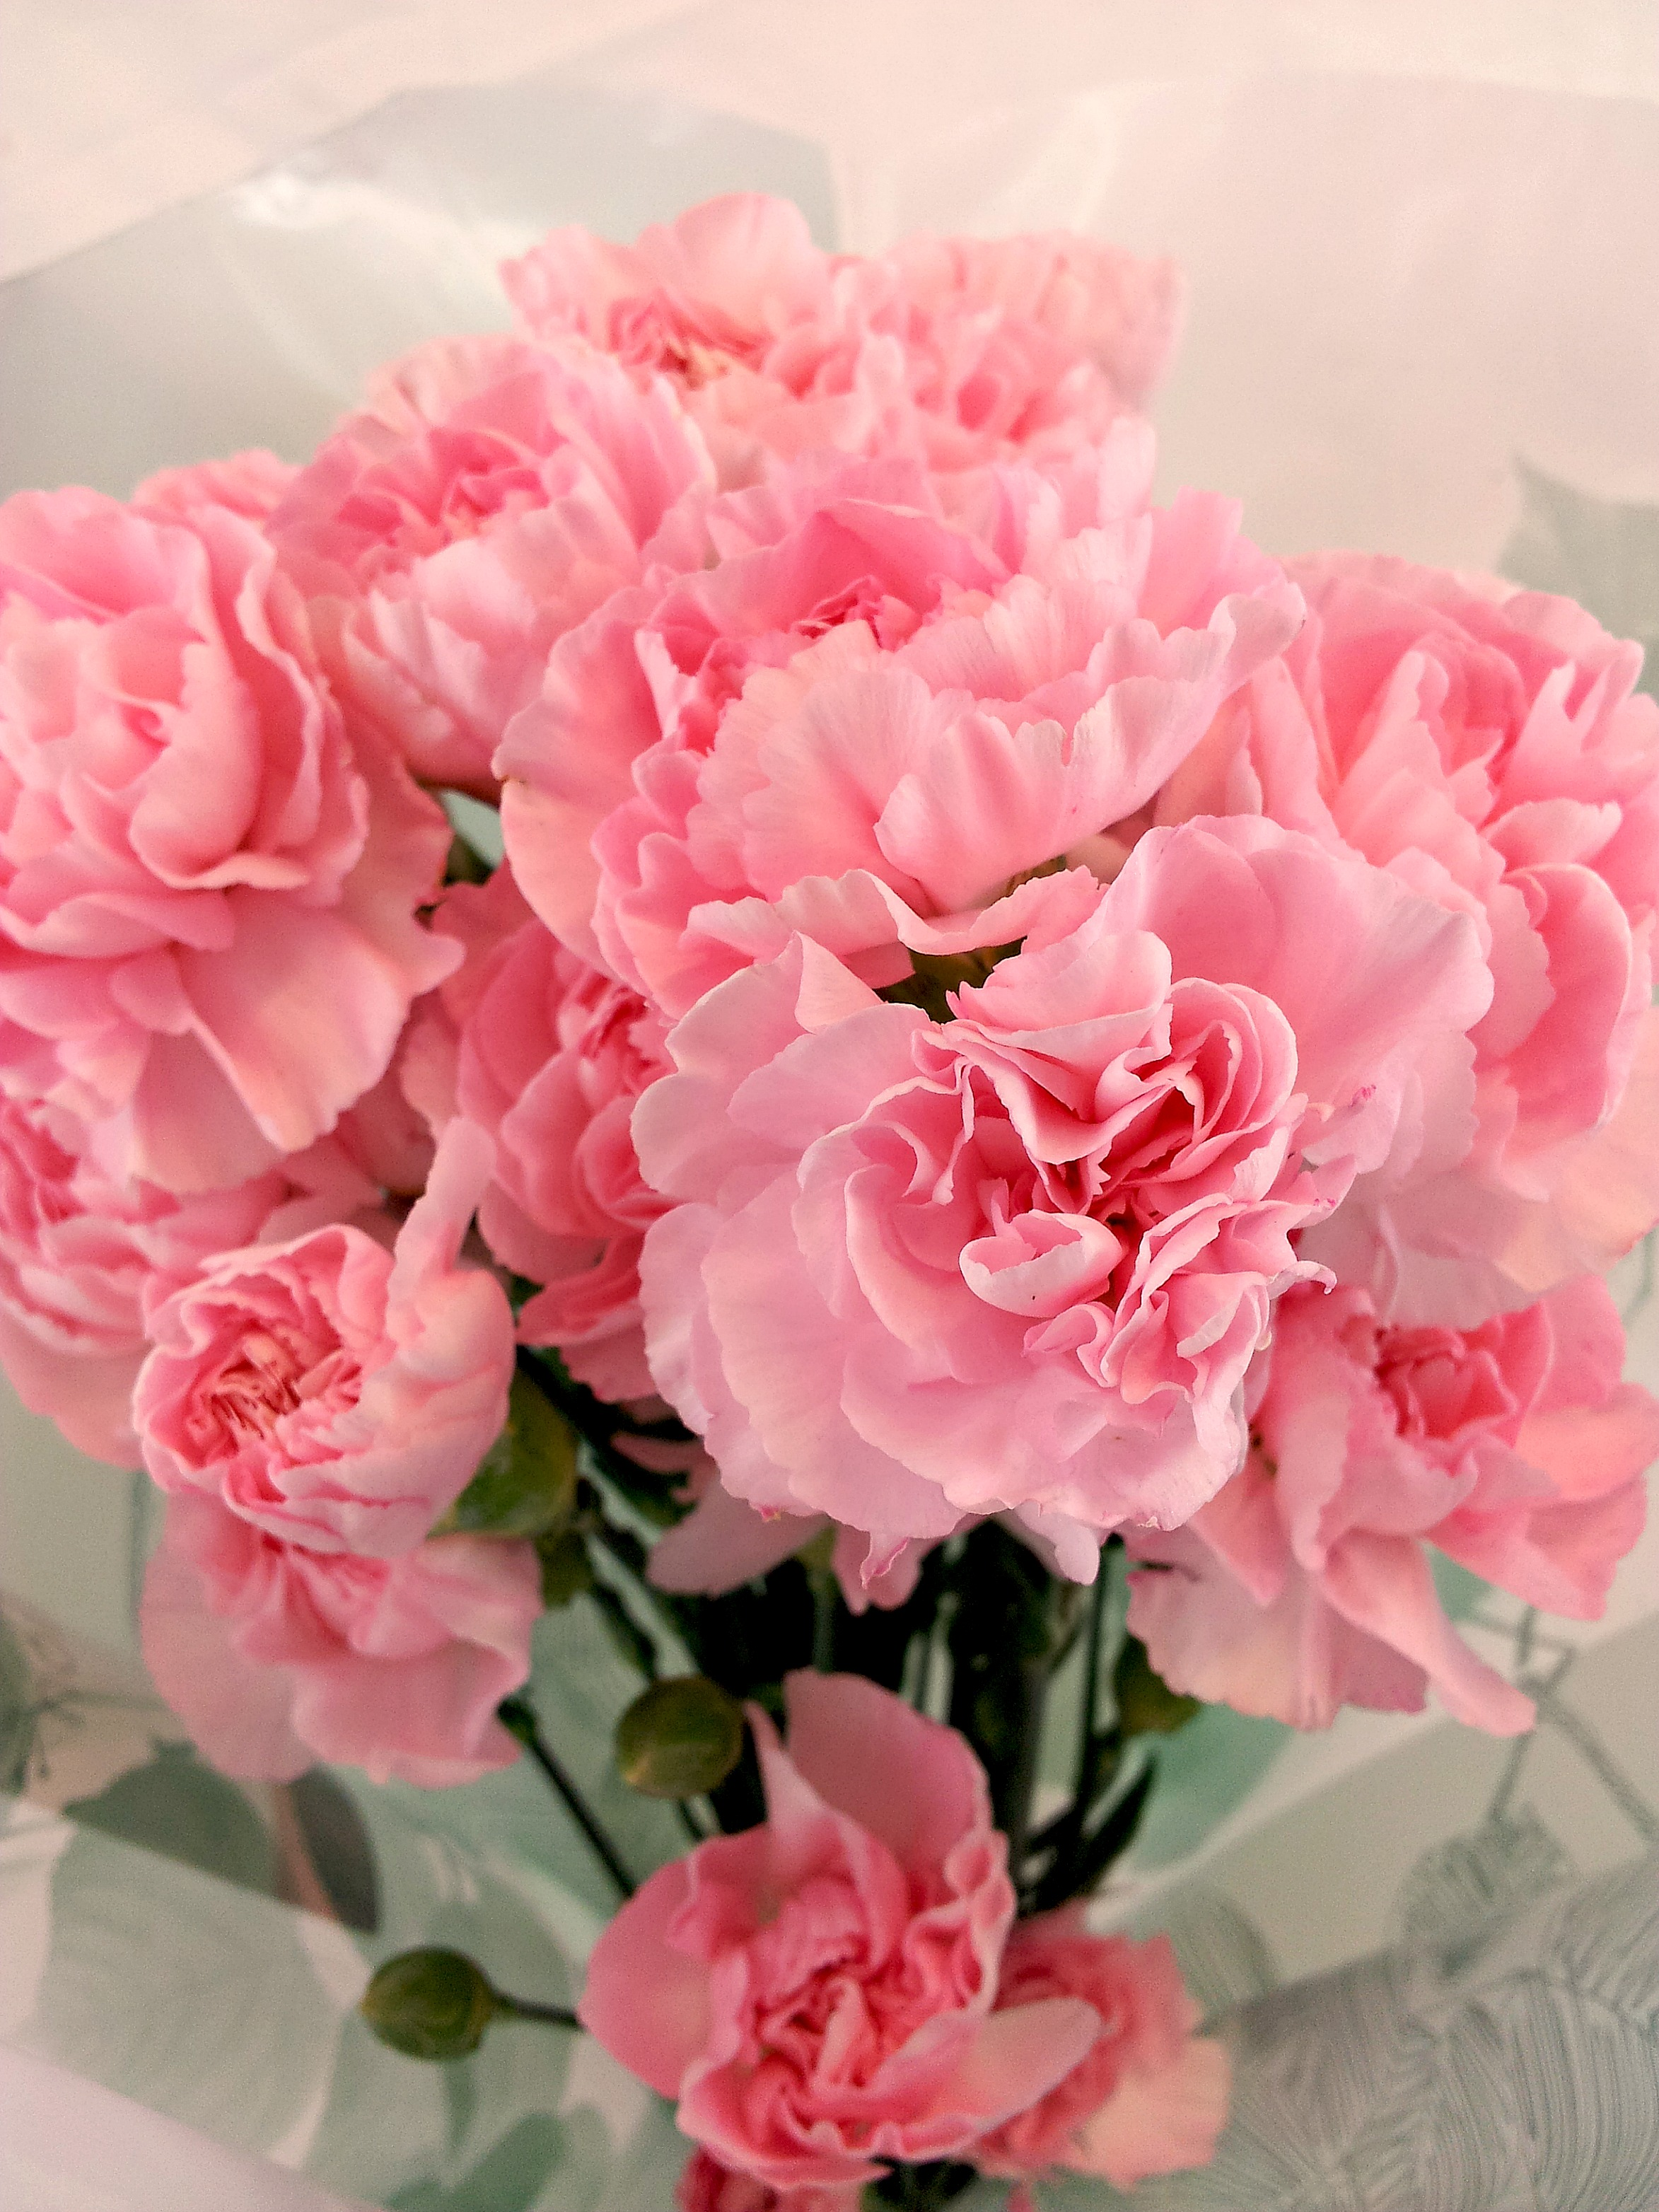 Choosing The Perfect Mothers Day Flowers For Your Wife